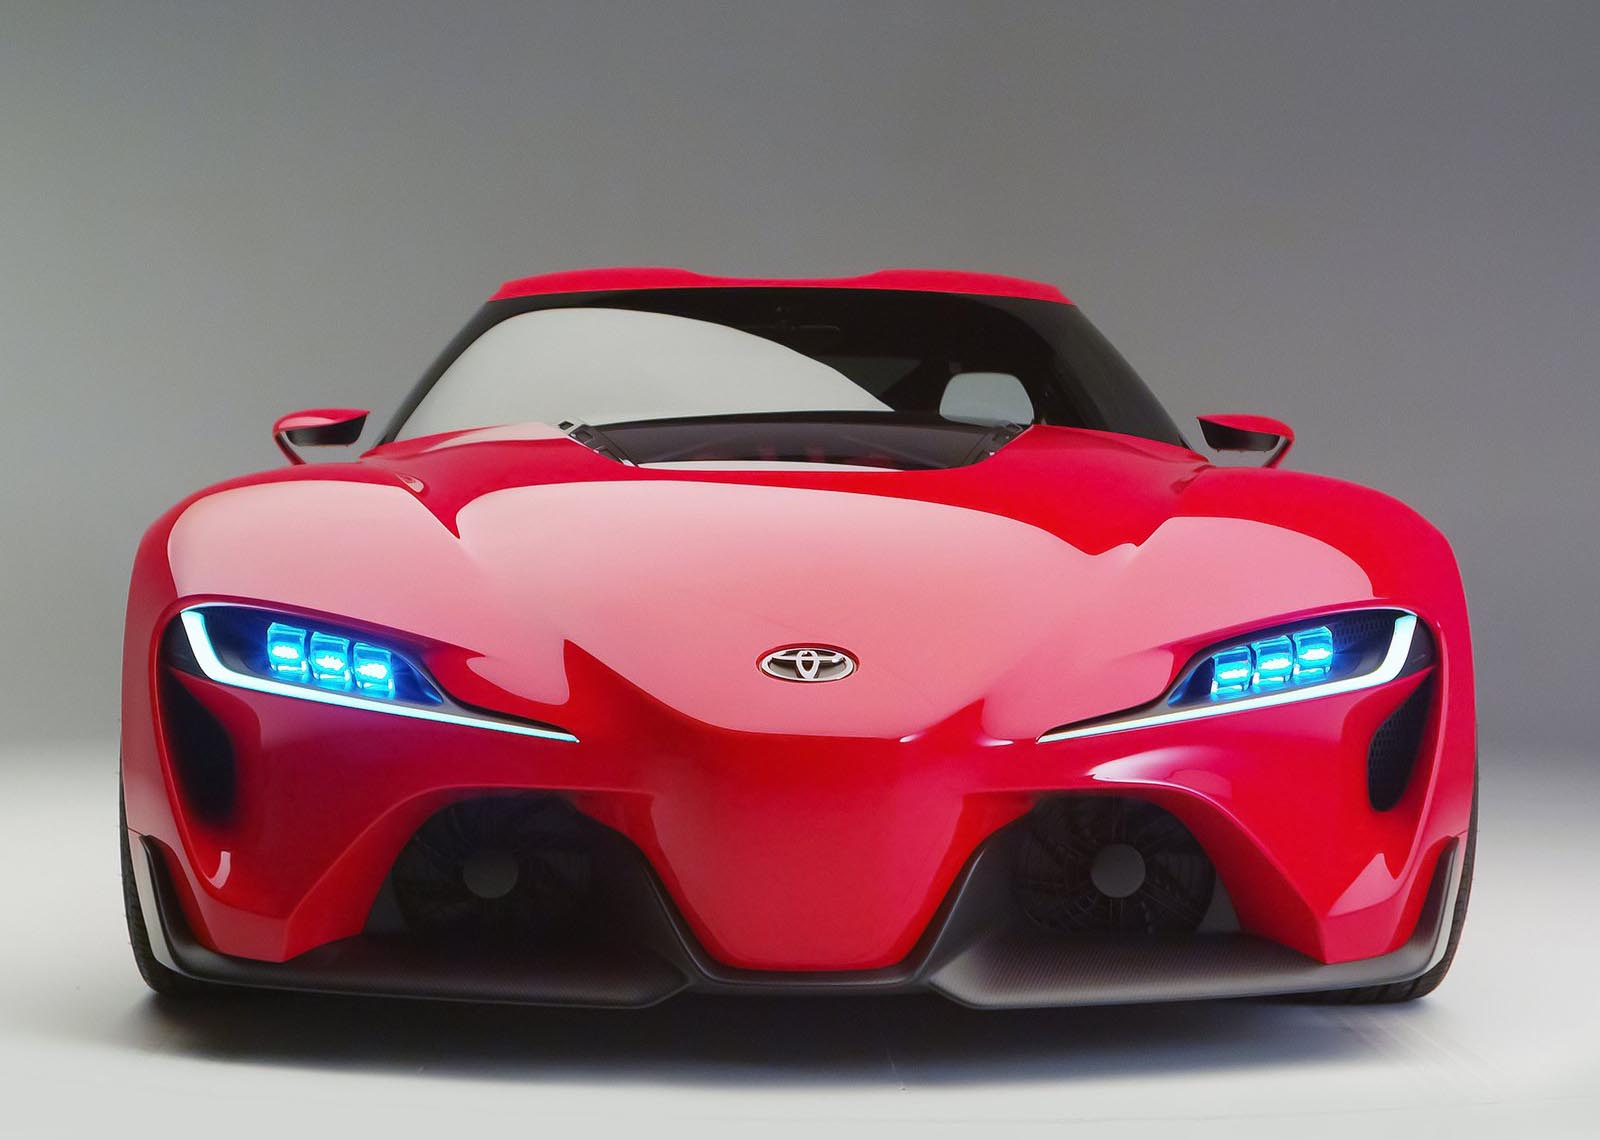 2014-Toyota-FT-1-HD-Wallpaper.jpg